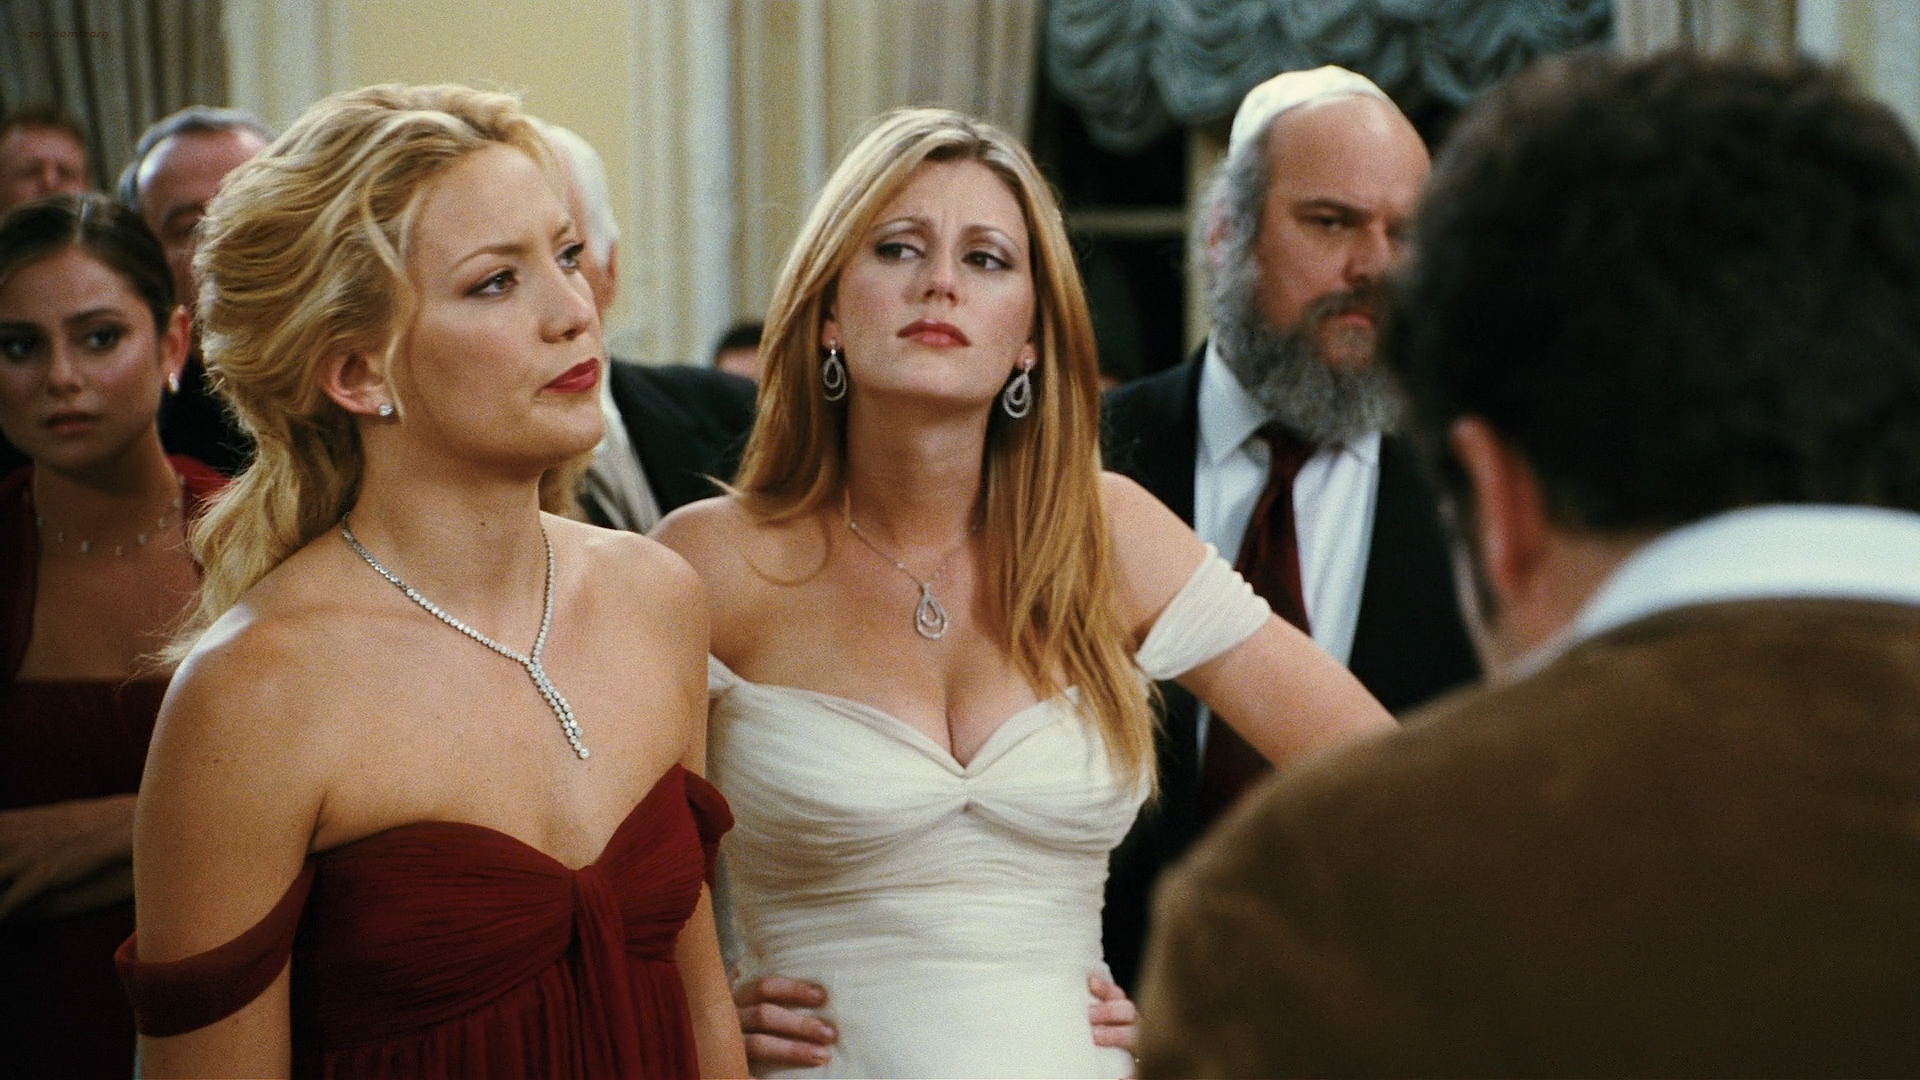 Kate Hudson hot Jacqui Holland nude Lizzy Caplan and Diora Baird hot - My Best Friend's Girl (2008) HD 1080p (15)